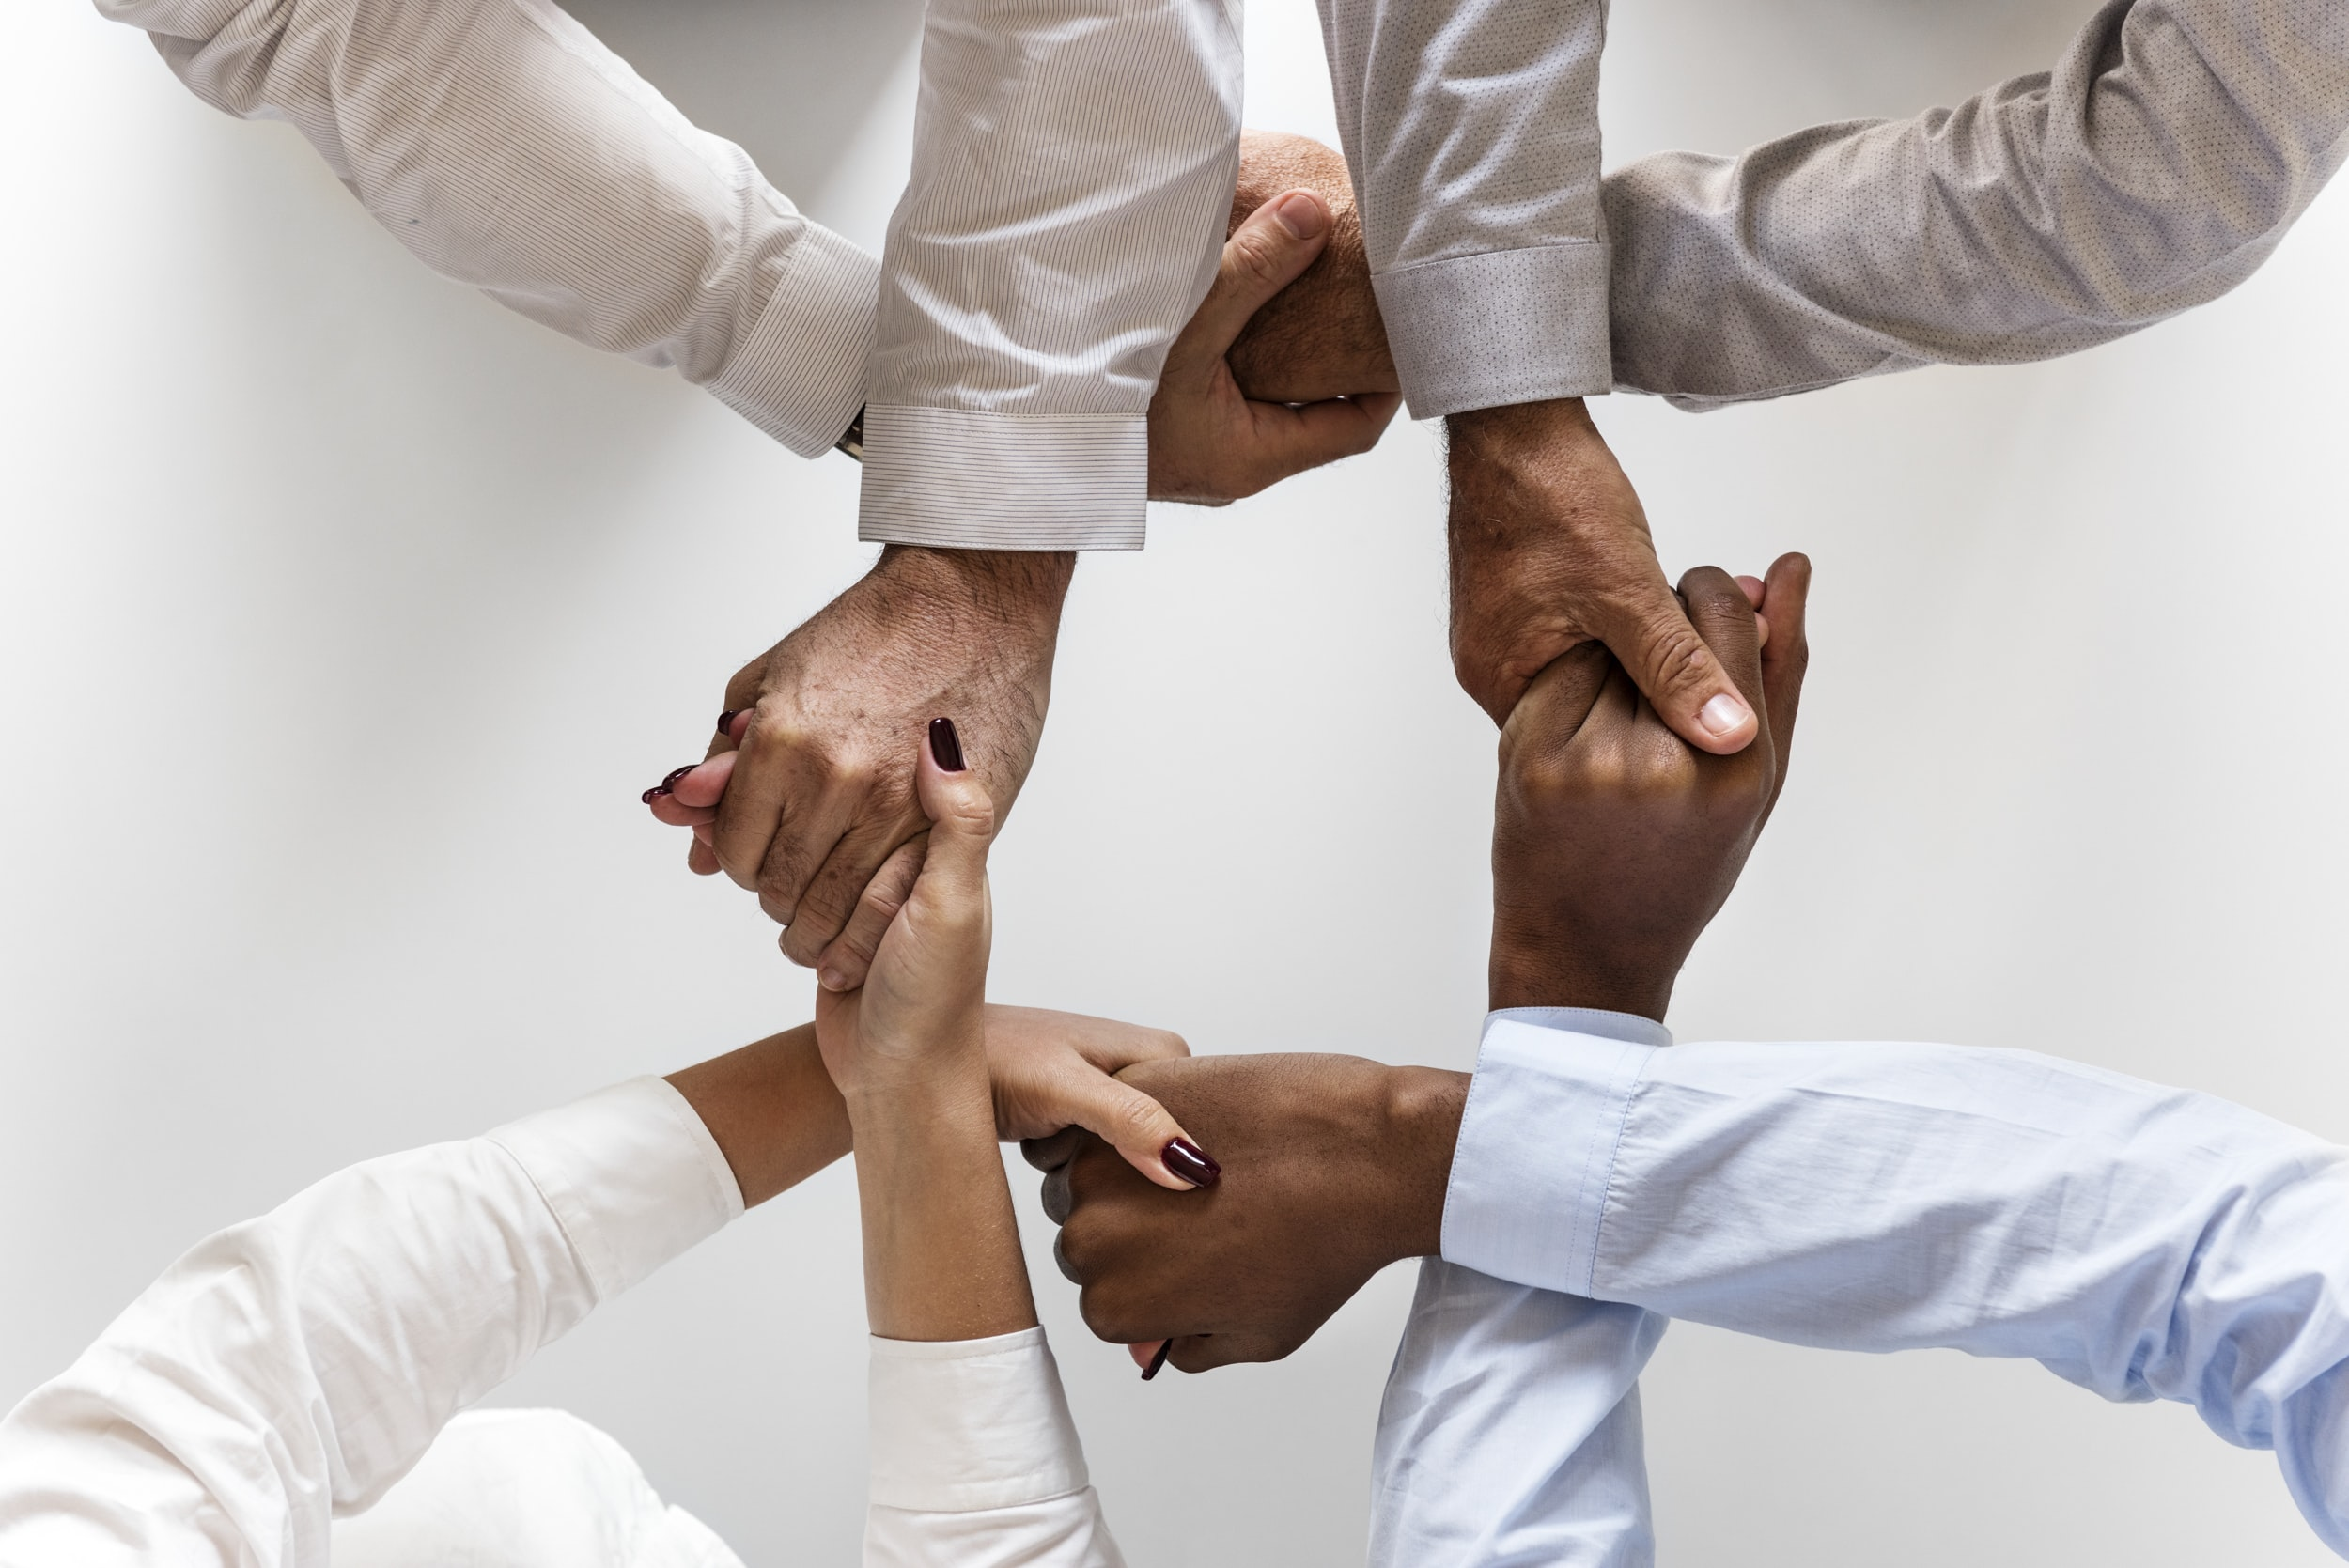 group of people hand gesture